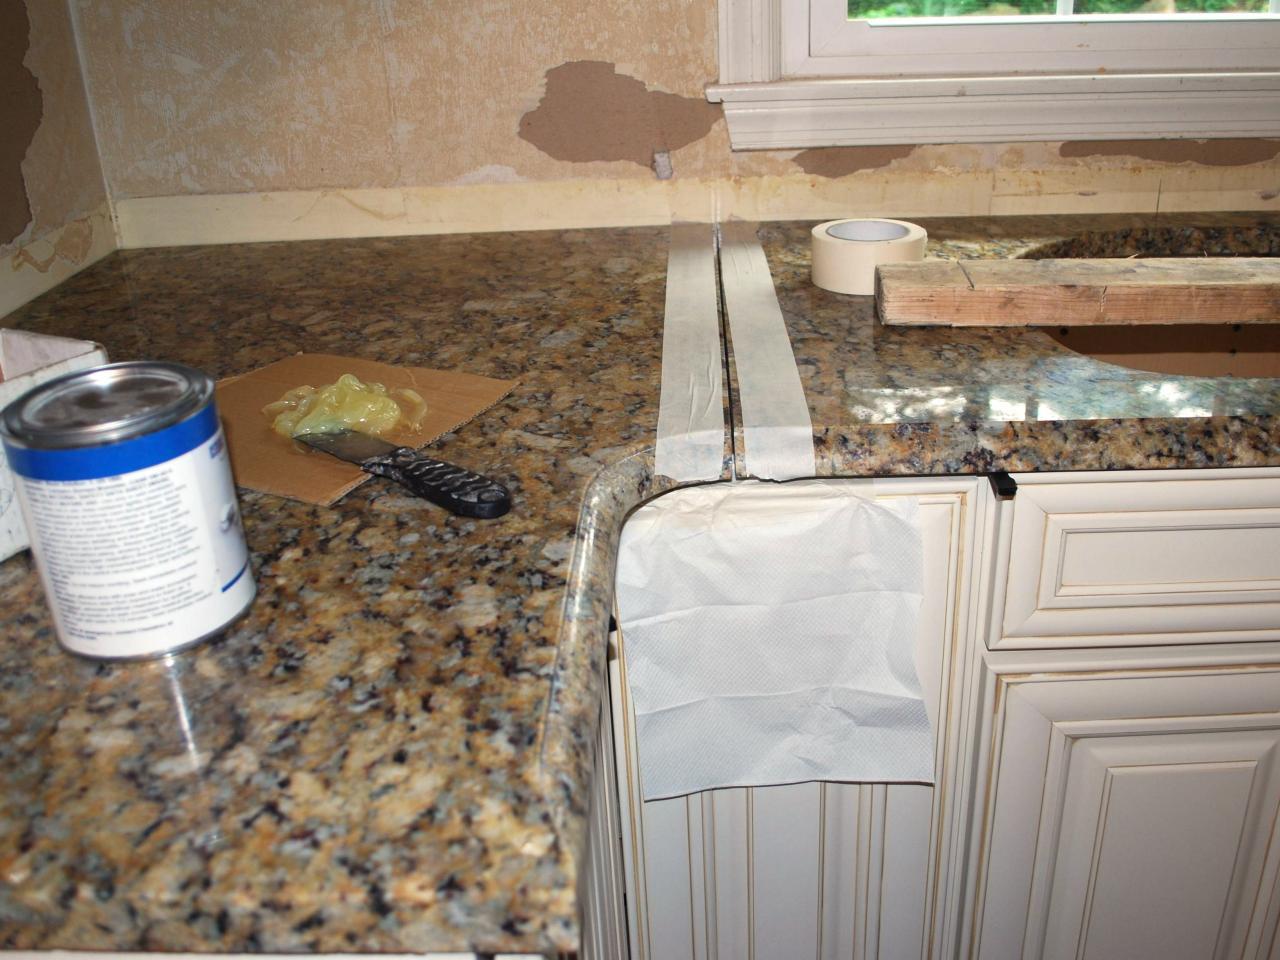 house seal expert home to countertops sealer enlarge granite designs picture sealing photos how dupont grout simple lowes depot stone countertop